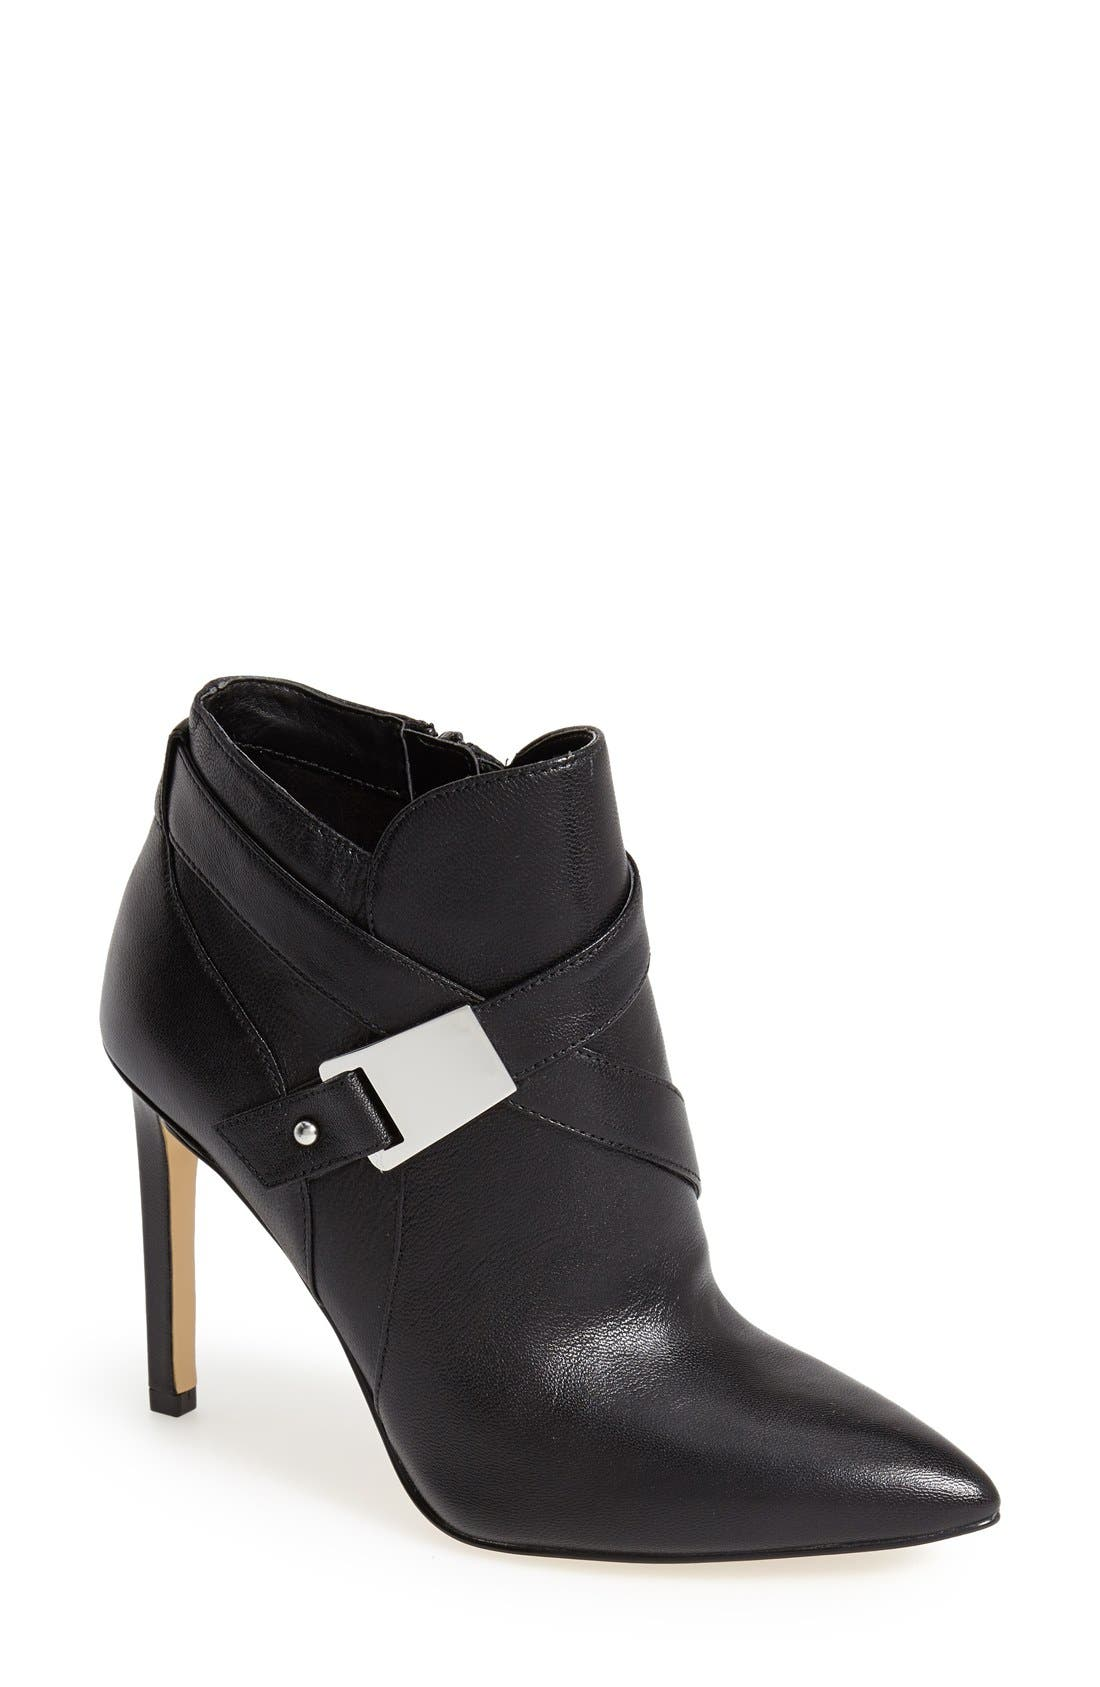 Alternate Image 1 Selected - GUESS 'Valari' Leather Pointy Toe Bootie (Women)